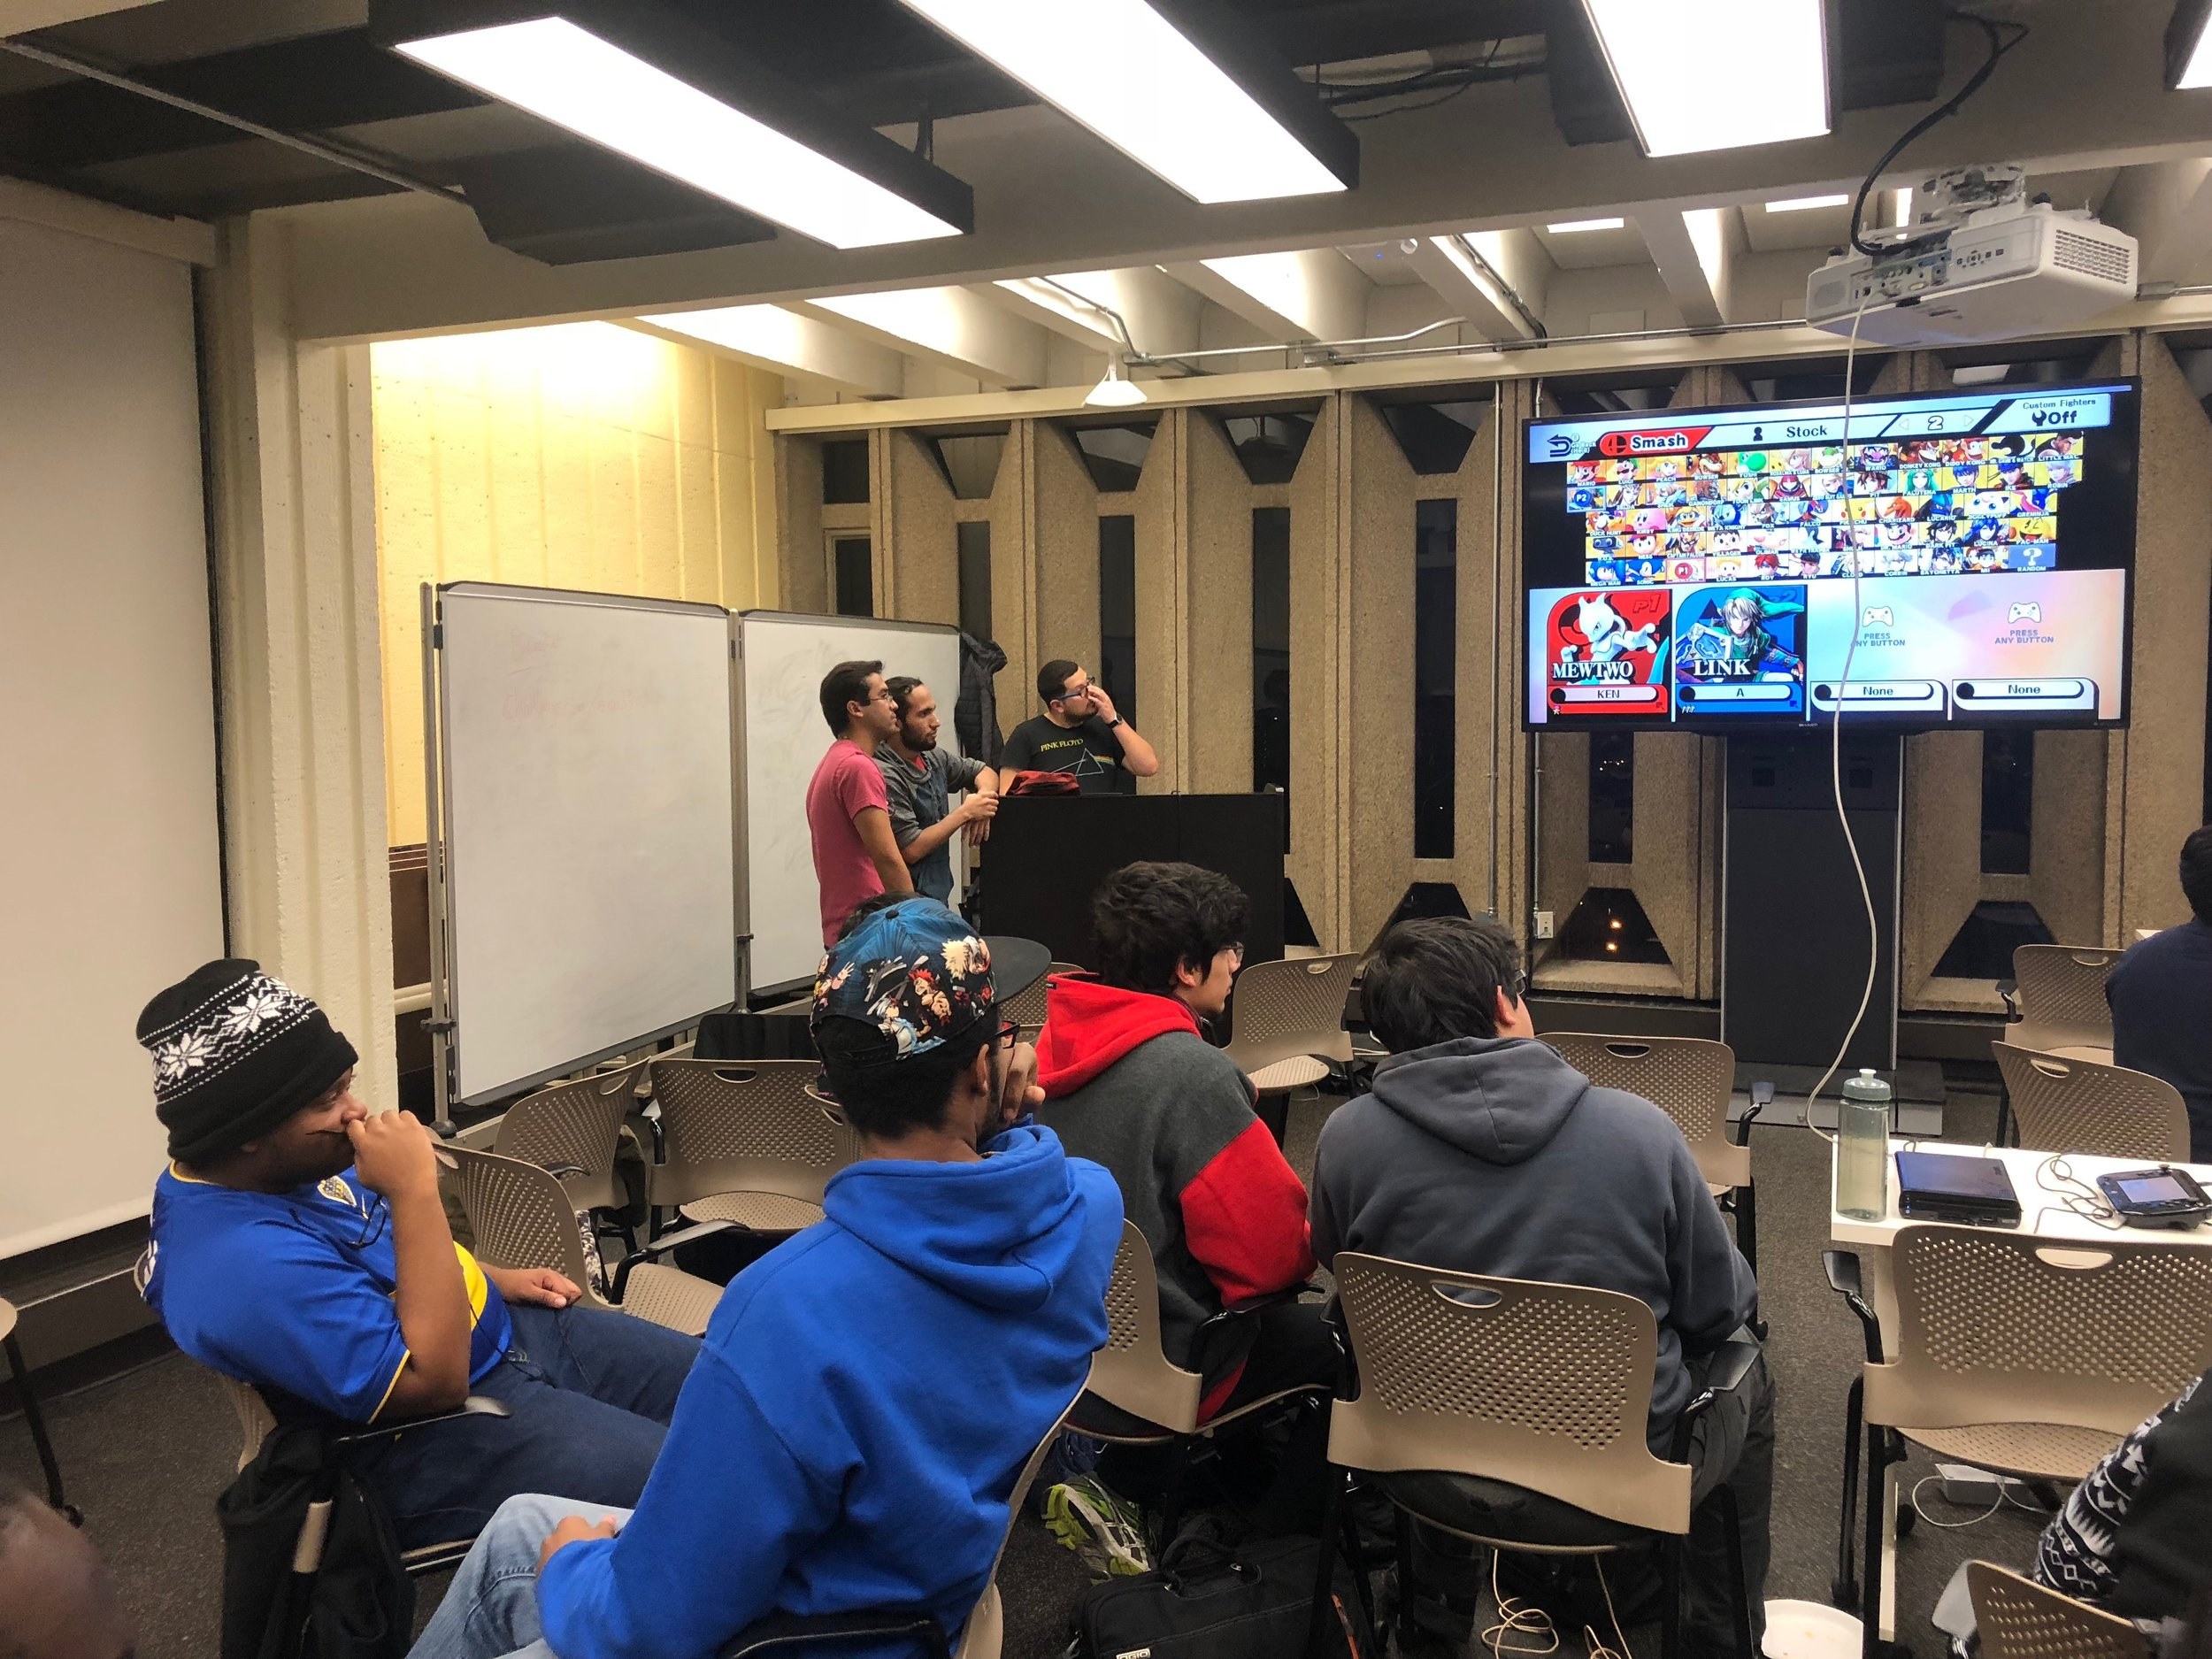 Community Building Events - Create events based on community interest that help promote our chapter, as well as, providing fun events for our members to unwind throughout the school year.